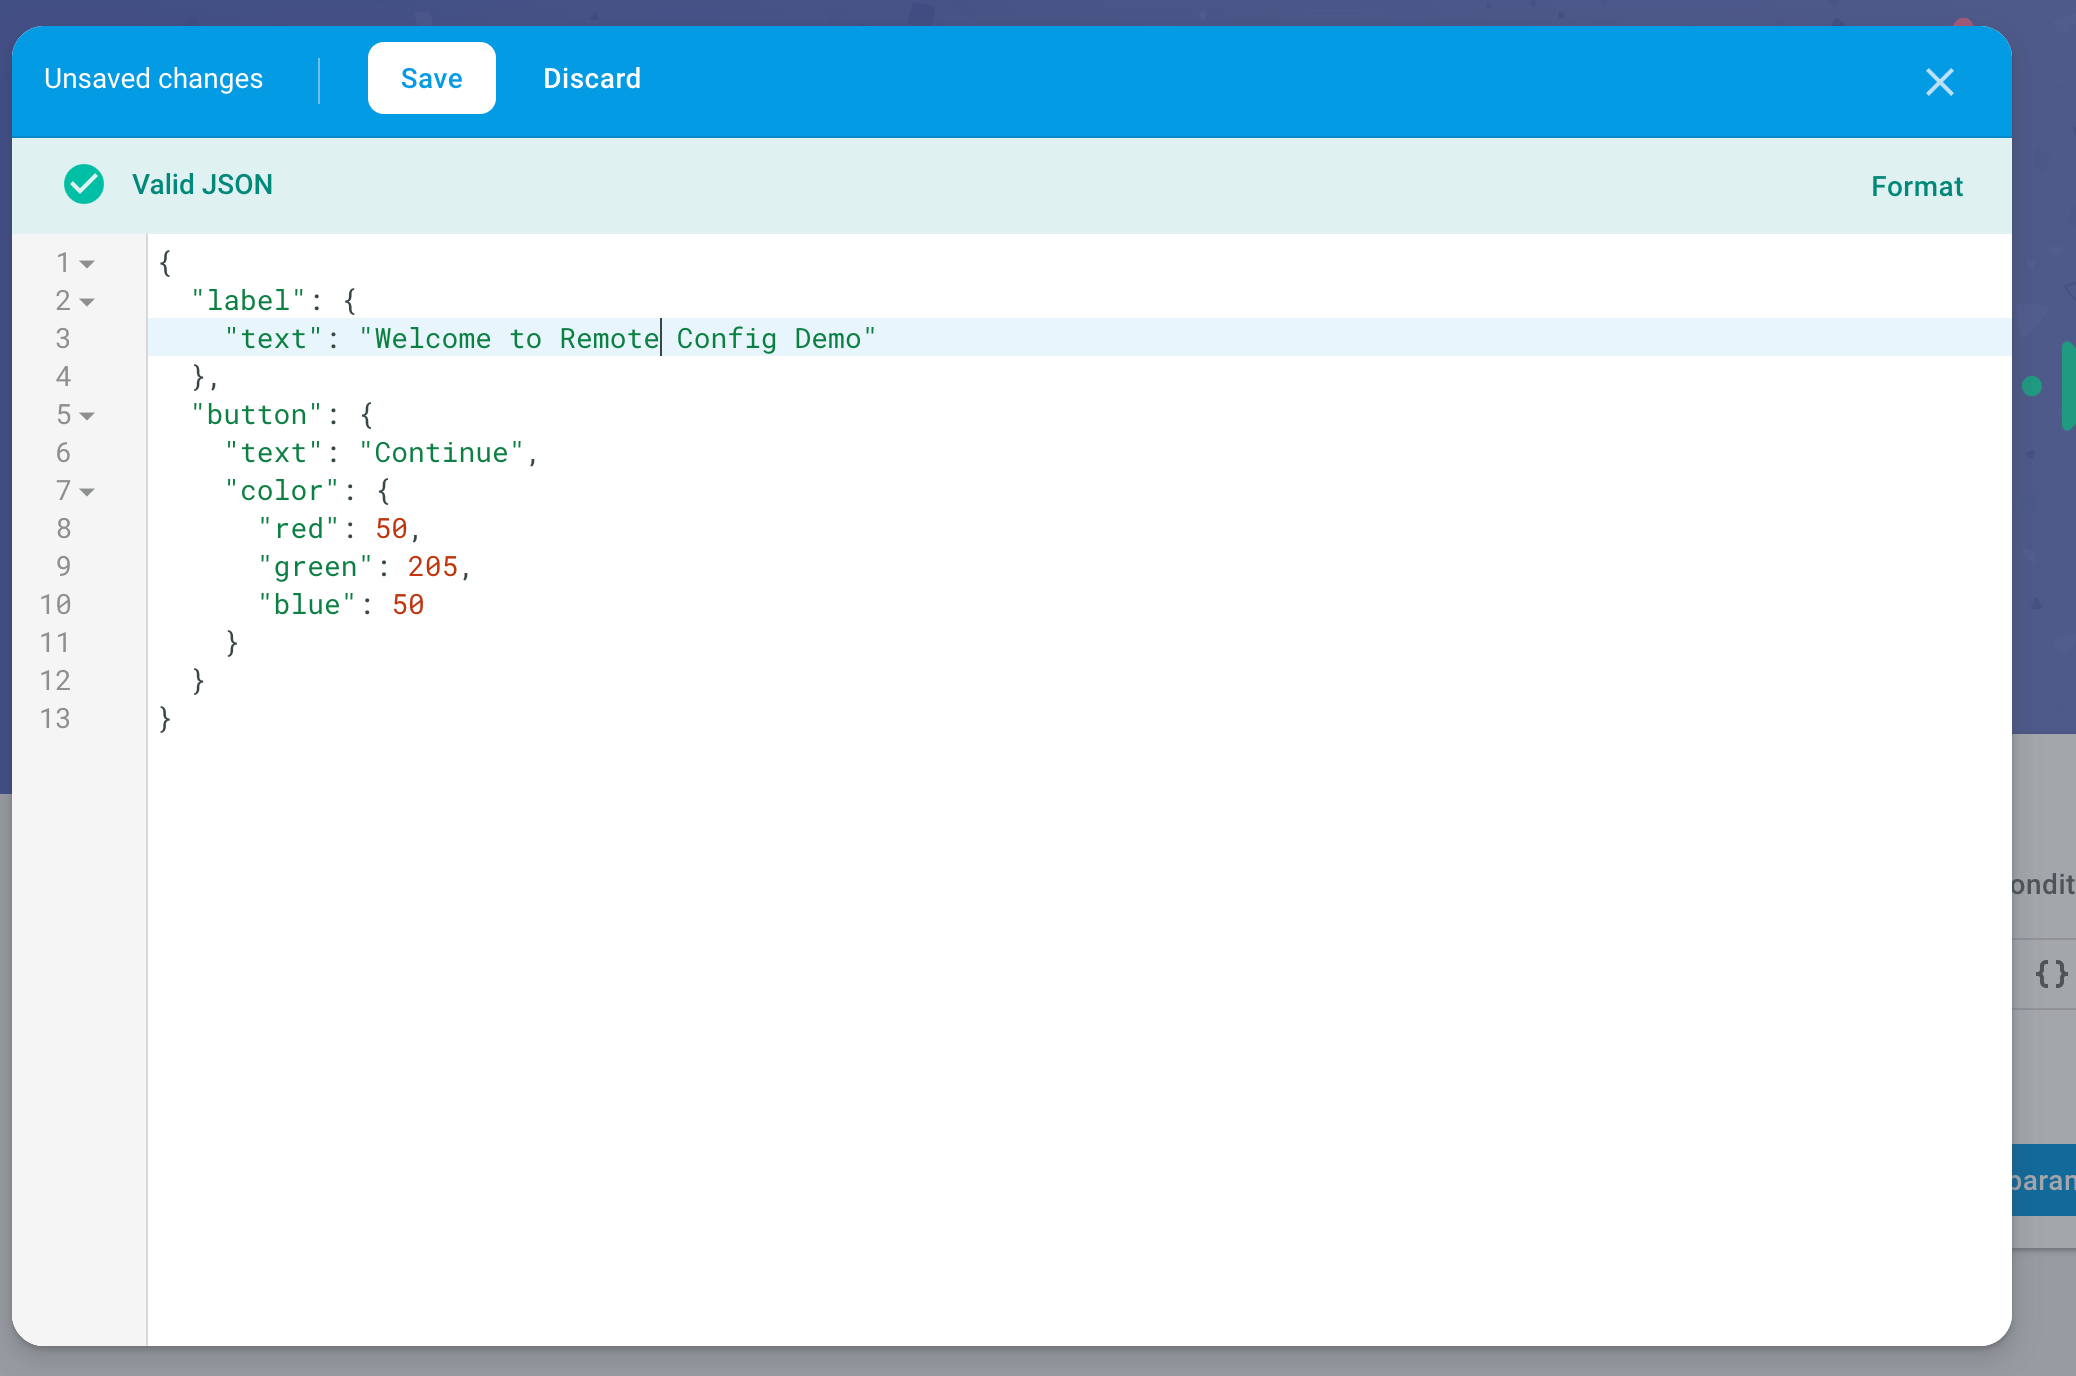 Remote Config with values screenshot